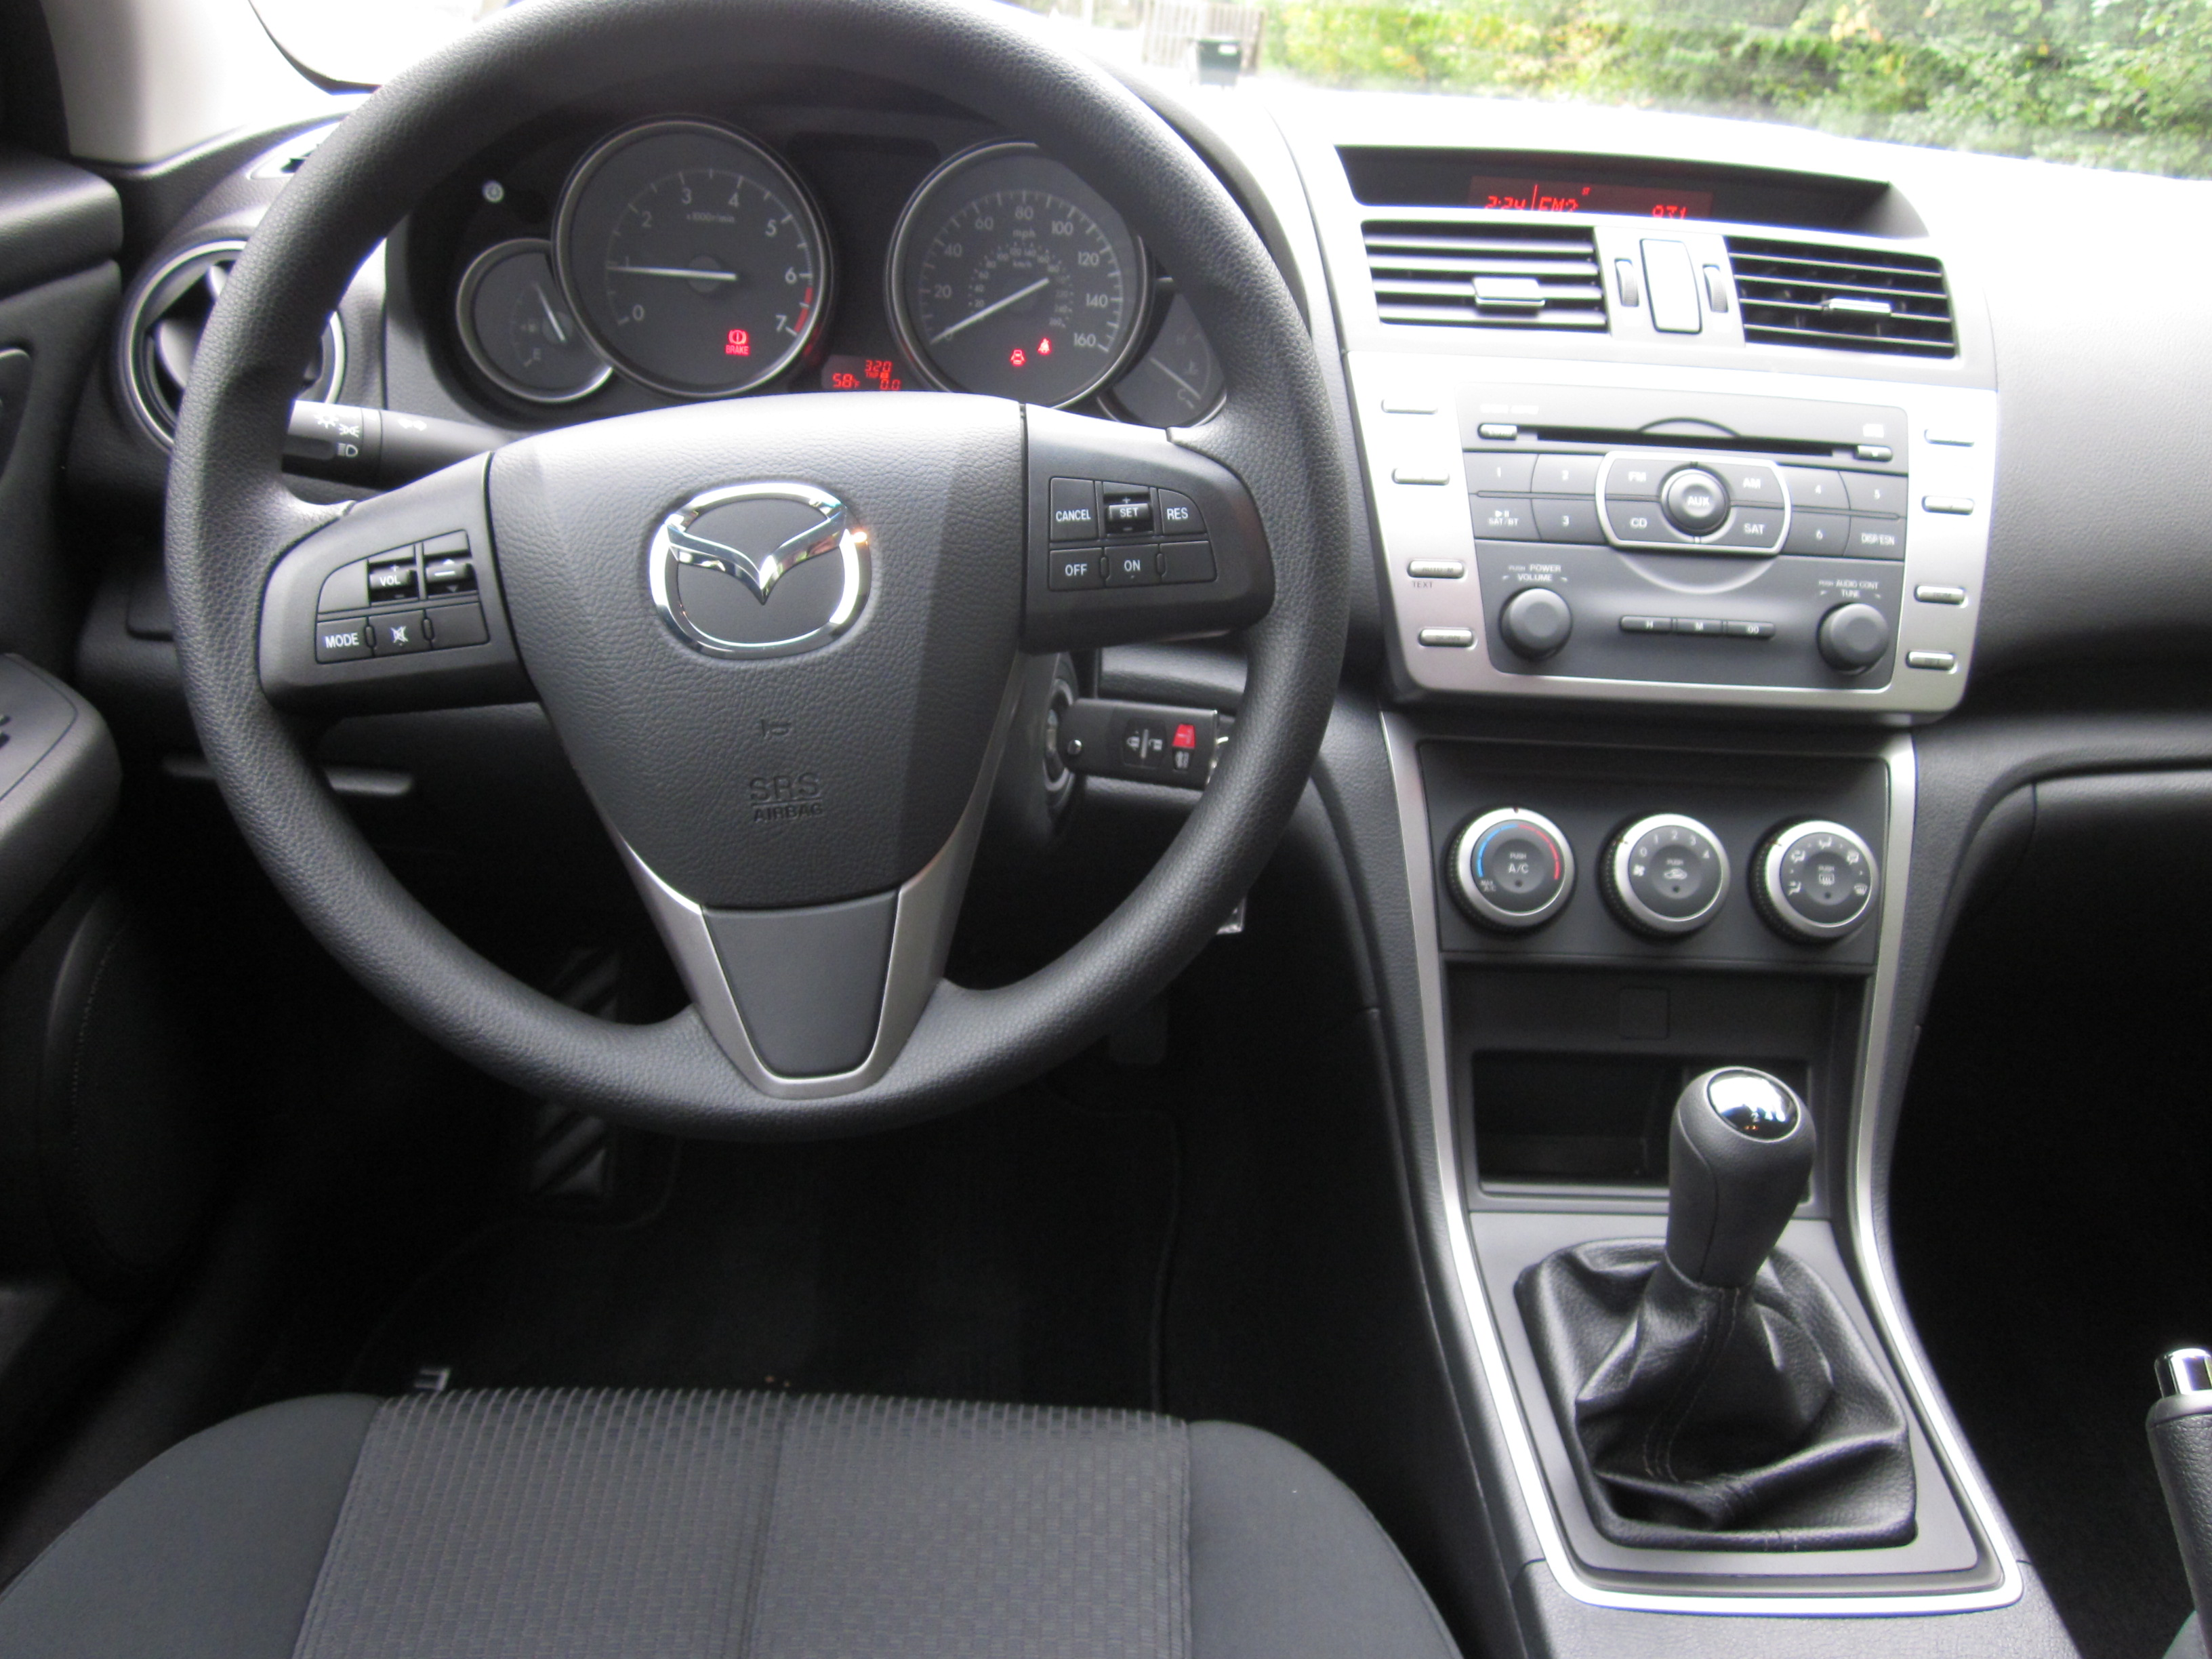 2012 Mazda6 (select To View Enlarged Photo)